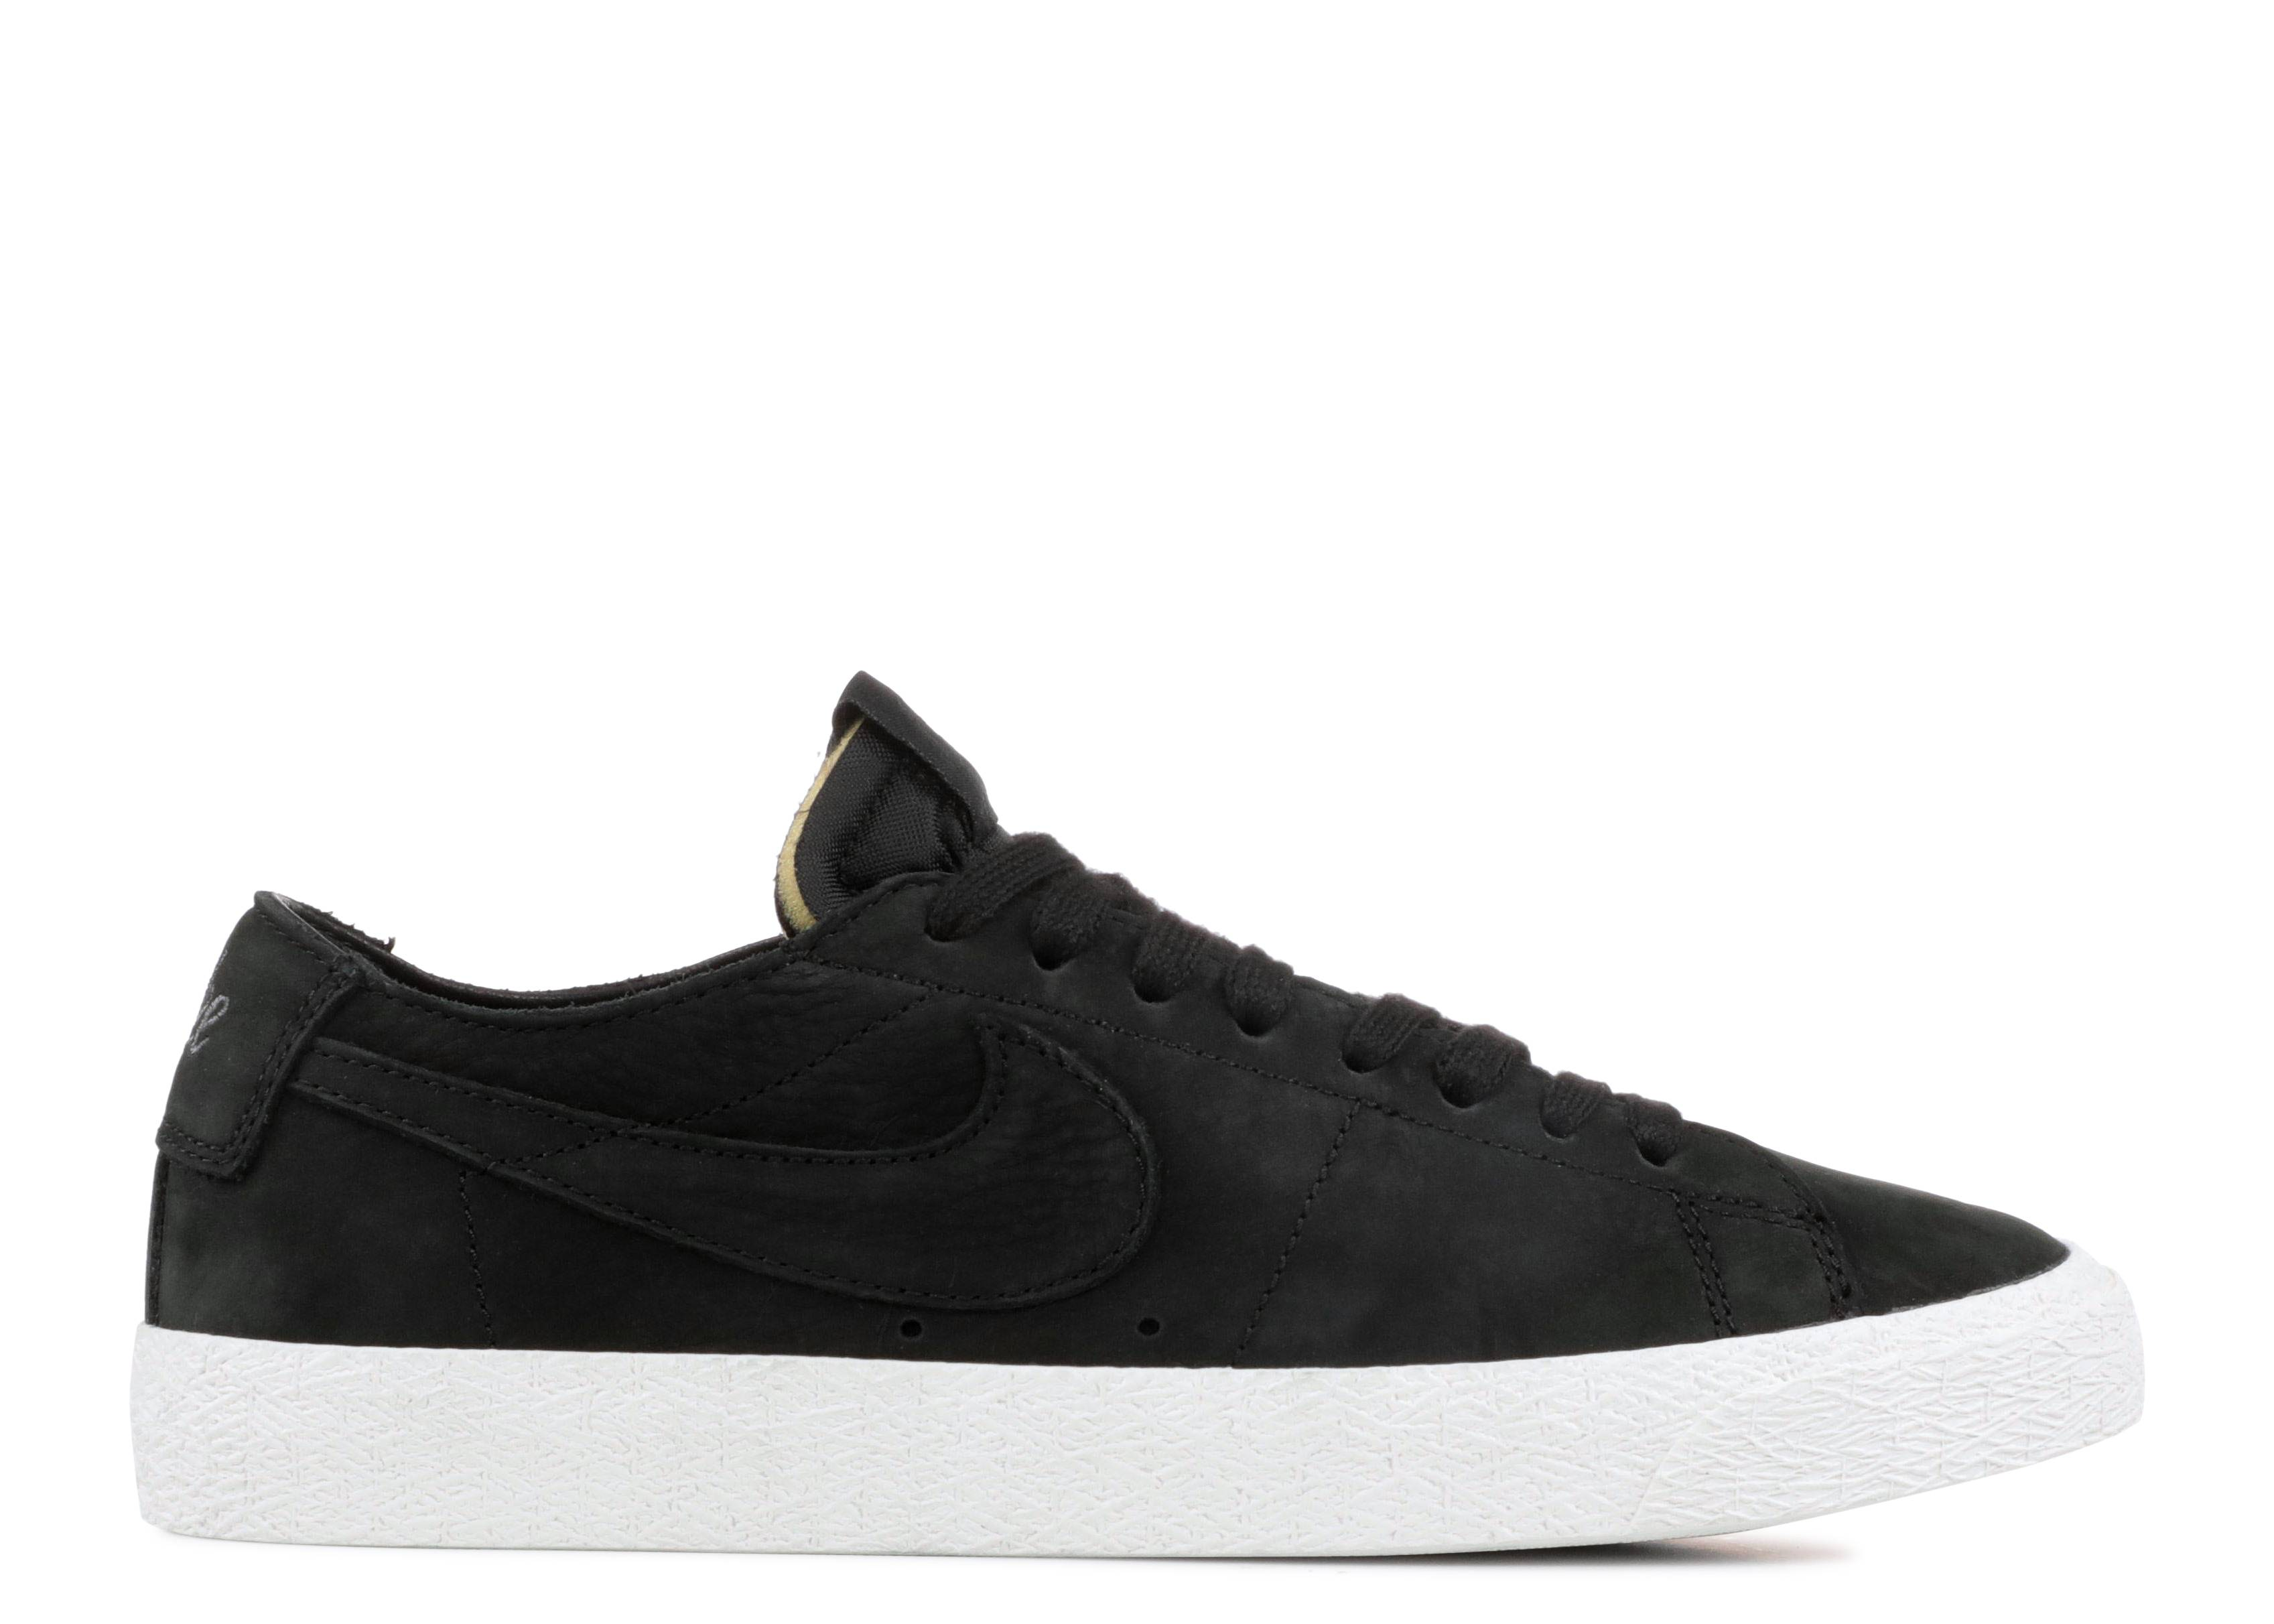 reputable site 0ddb3 d7ada Nike Sb Zoom Blazer Low Decon - Nike - AA4274 002 - black black-anthracite    Flight Club